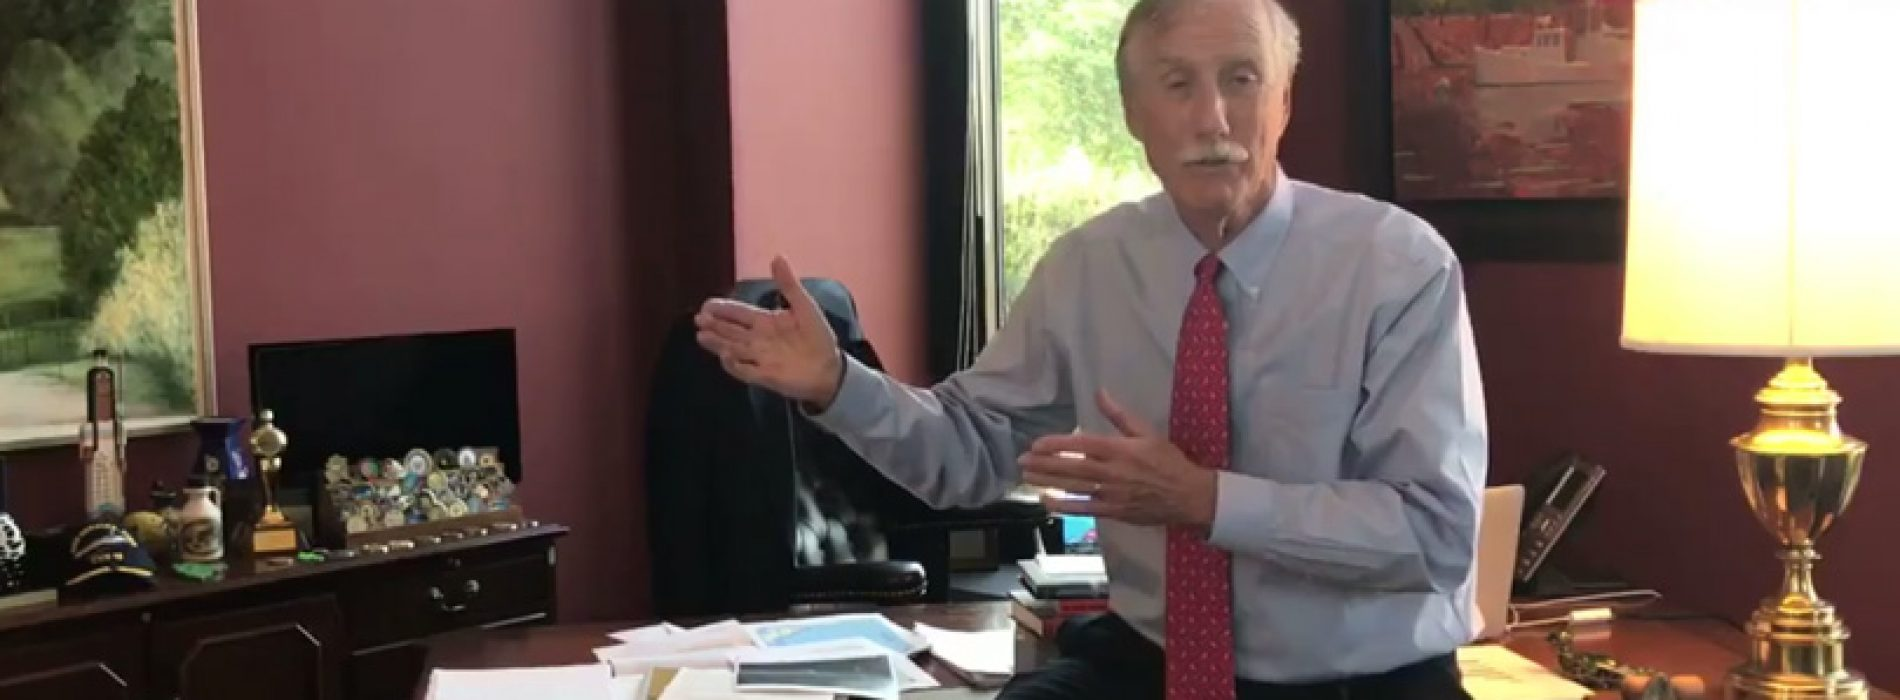 Sen. King blasts health care repeal bill while Rep. Poliquin continues to hide